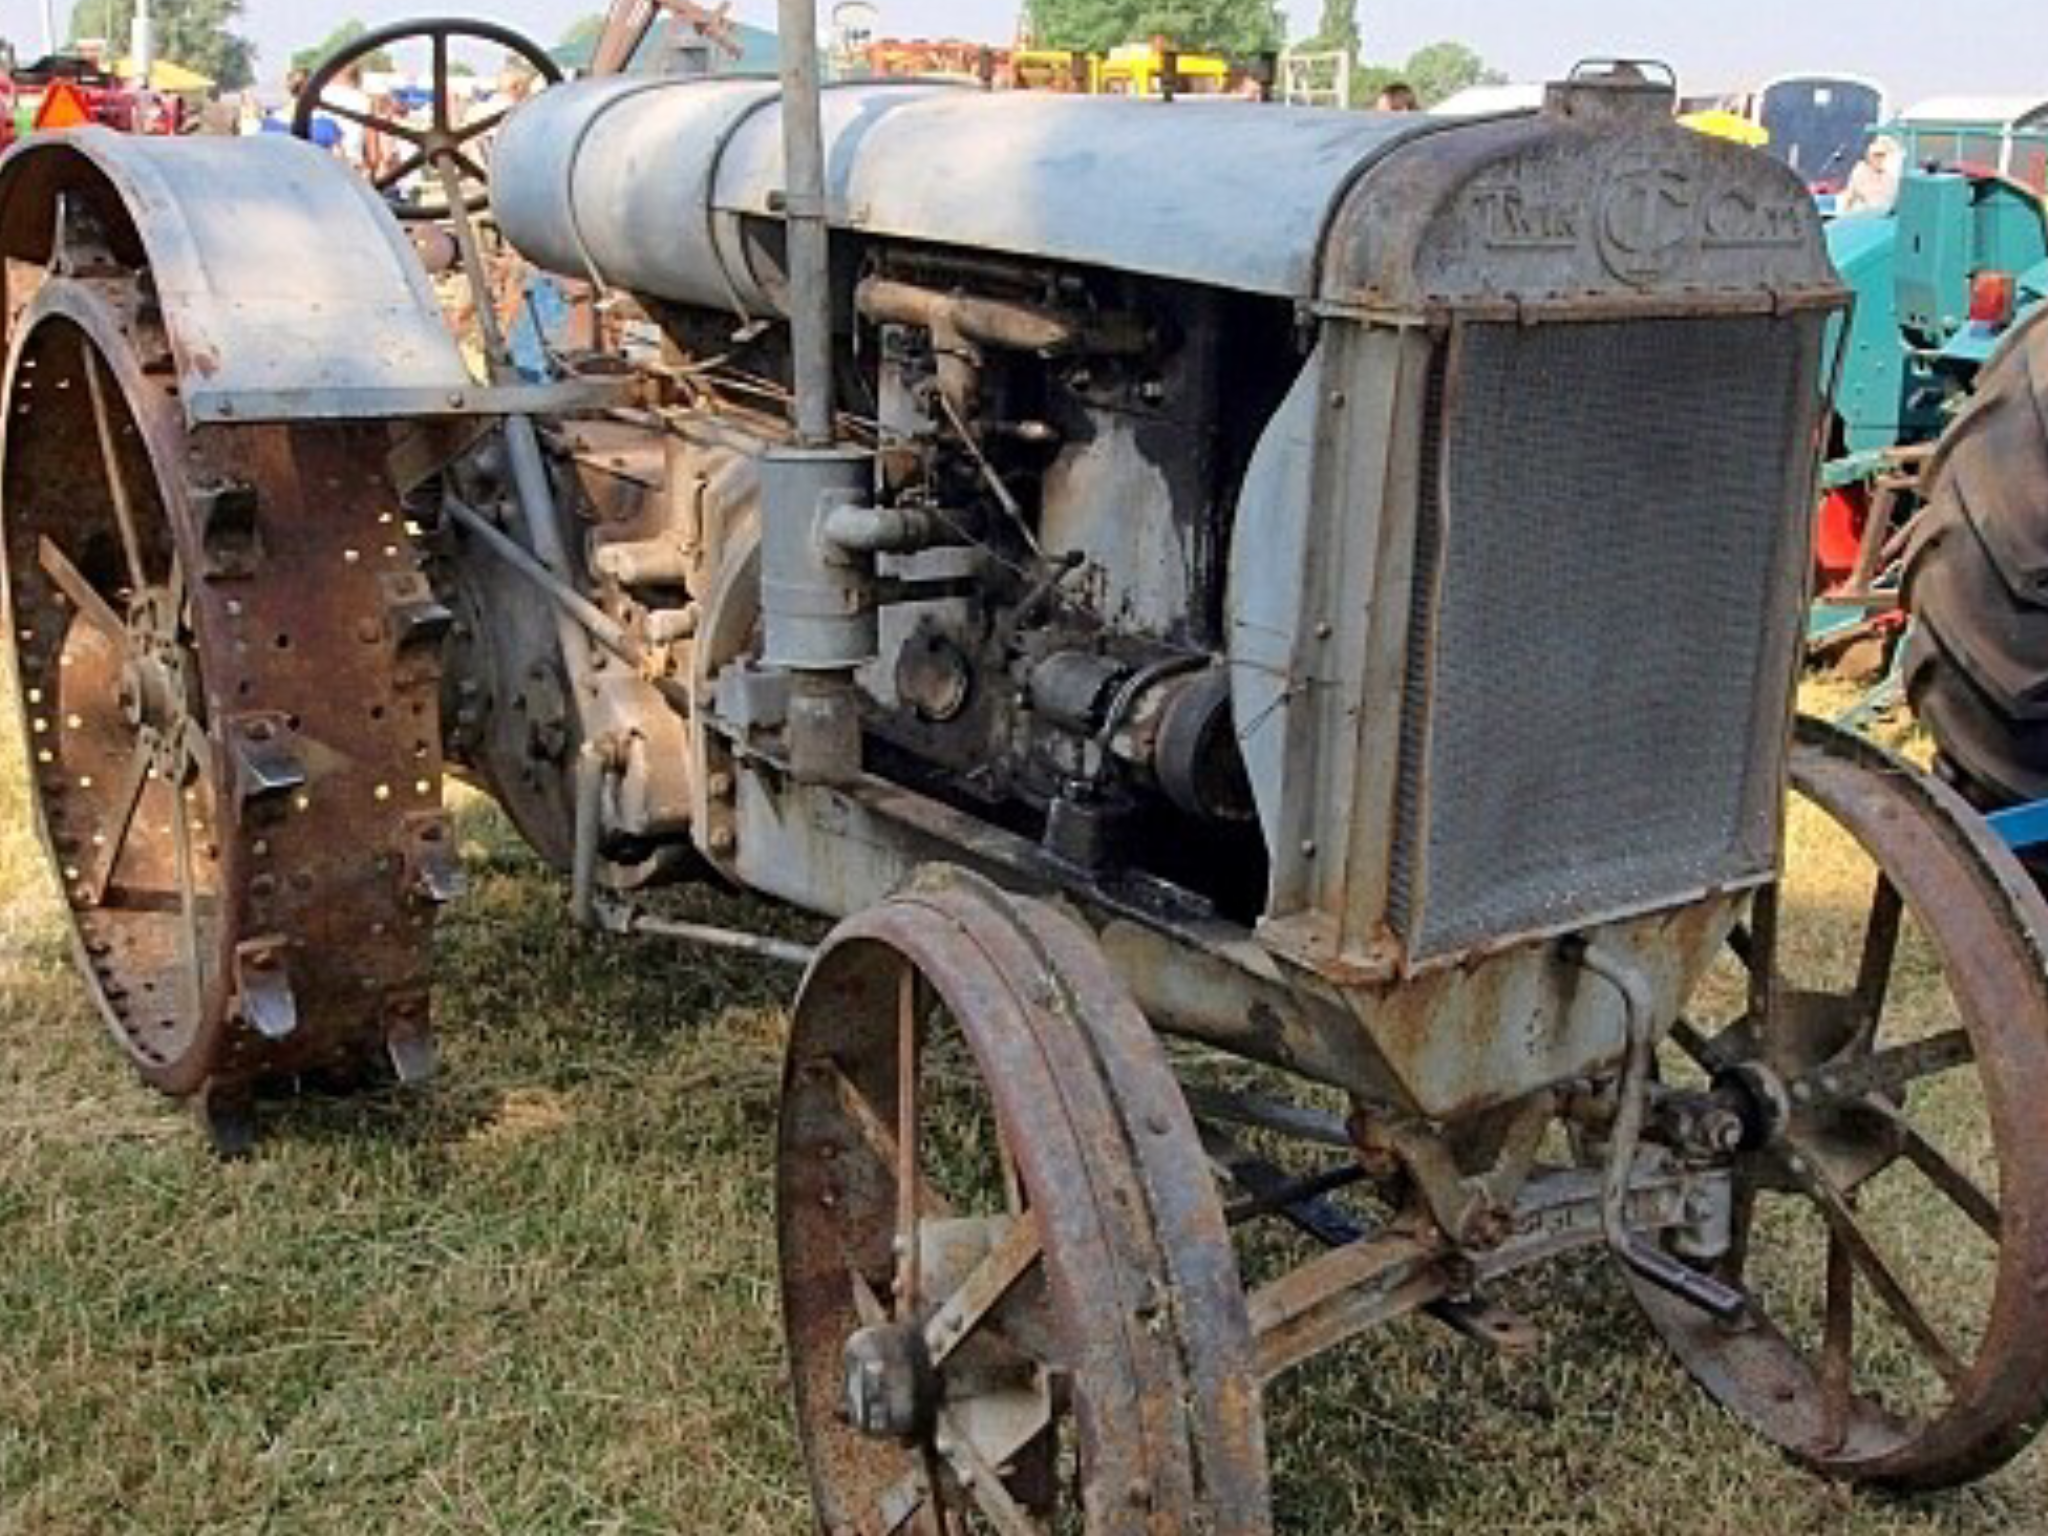 Pin by Lynda Weetman on Tractors Antique cars